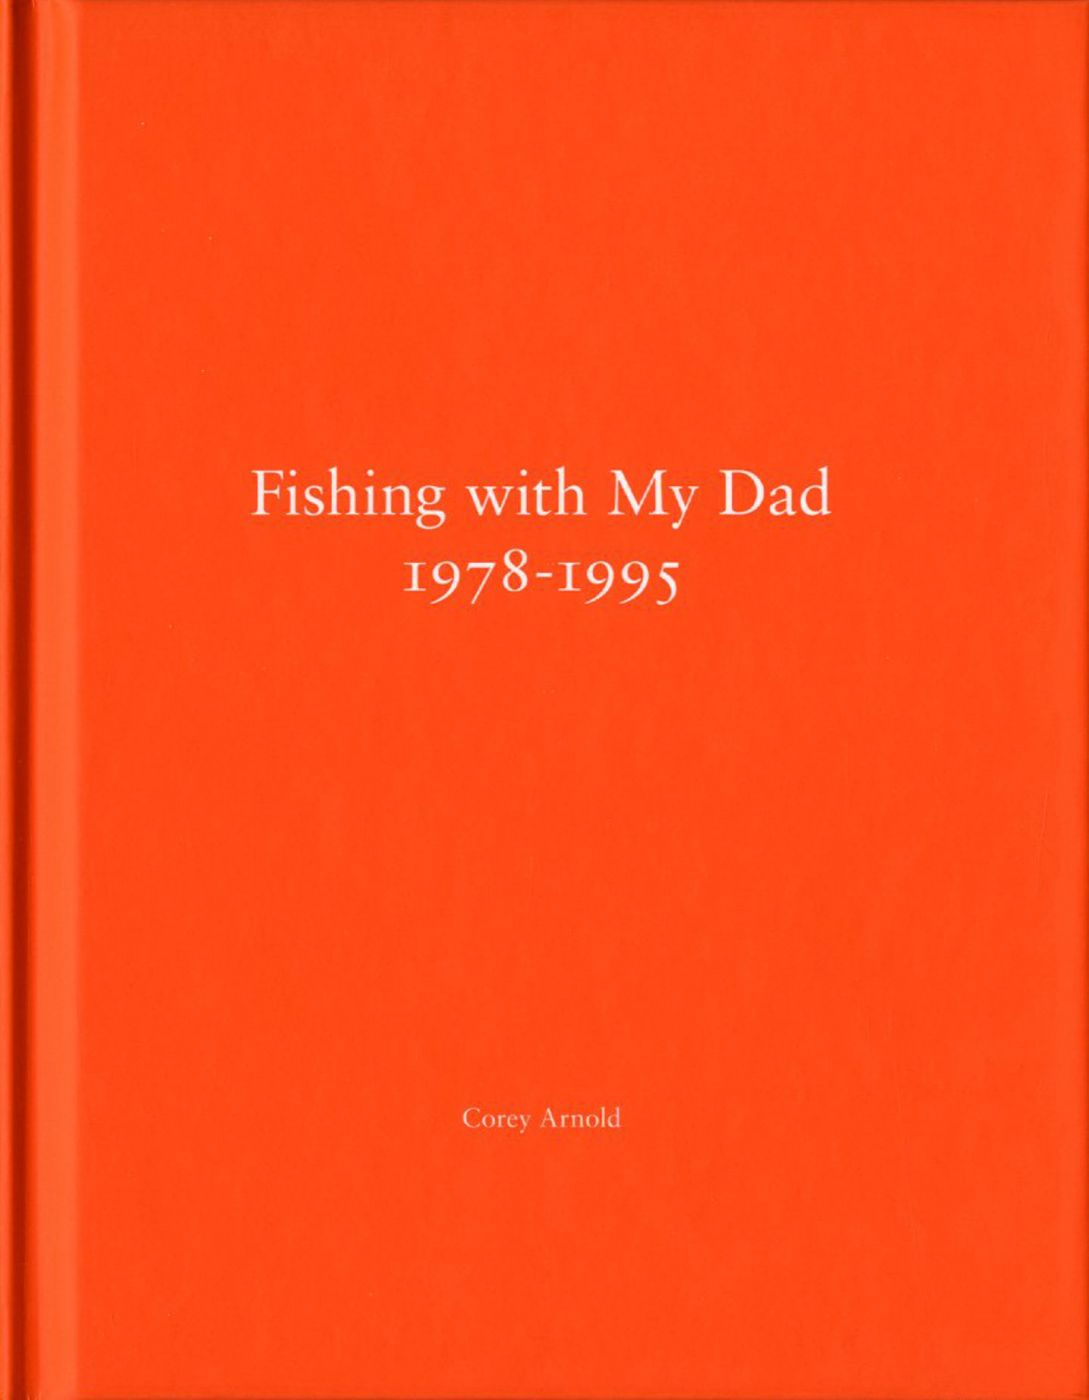 Corey Arnold and Chris Arnold: Fishing with My Dad 1978-1995 (One Picture Book #69), Limited Edition (with Print)